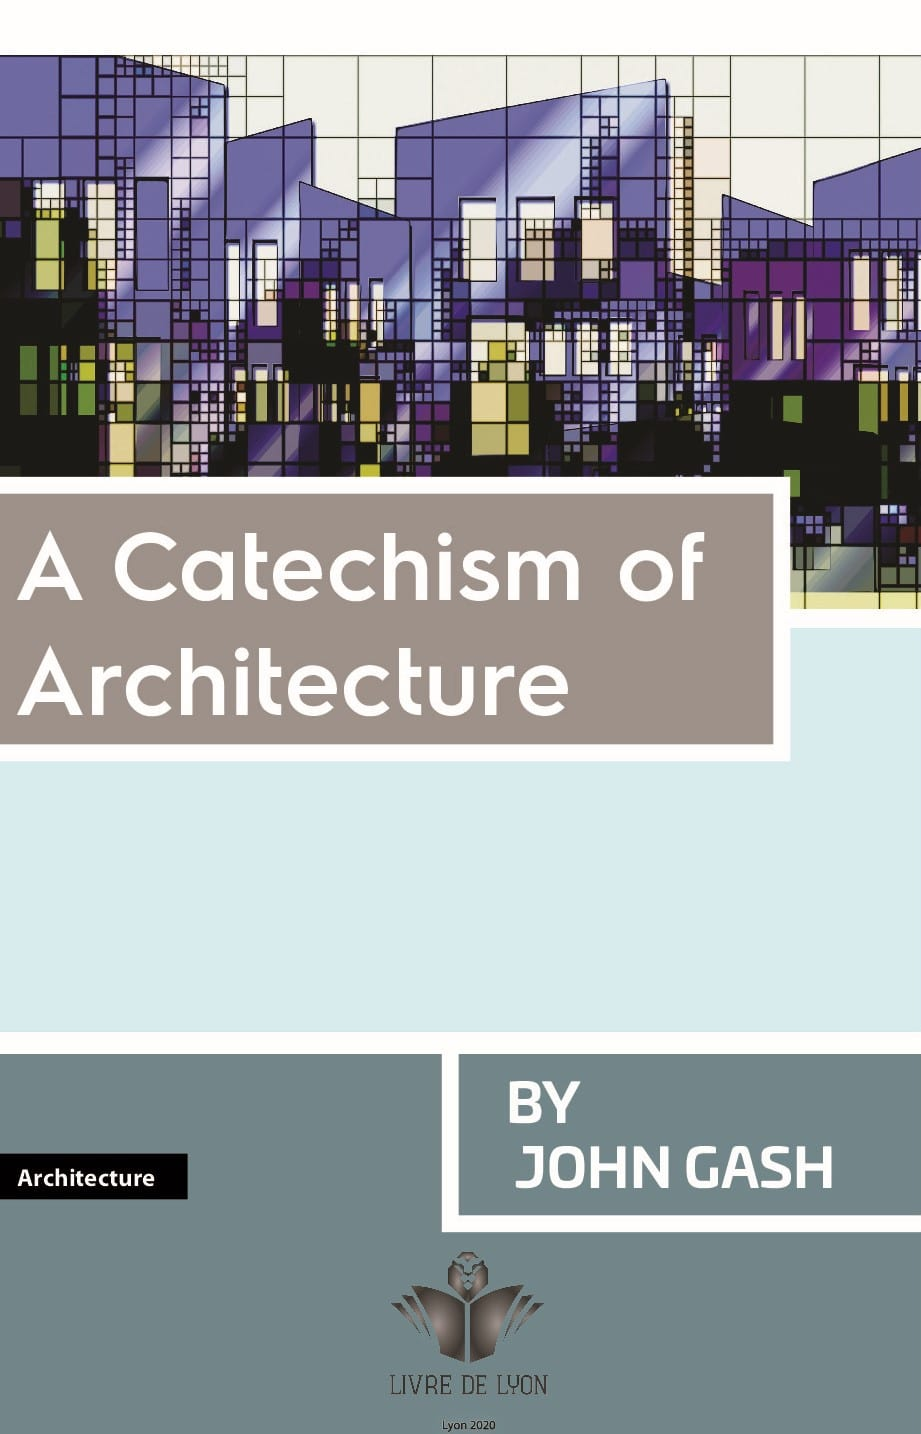 A Catechism of Architecture